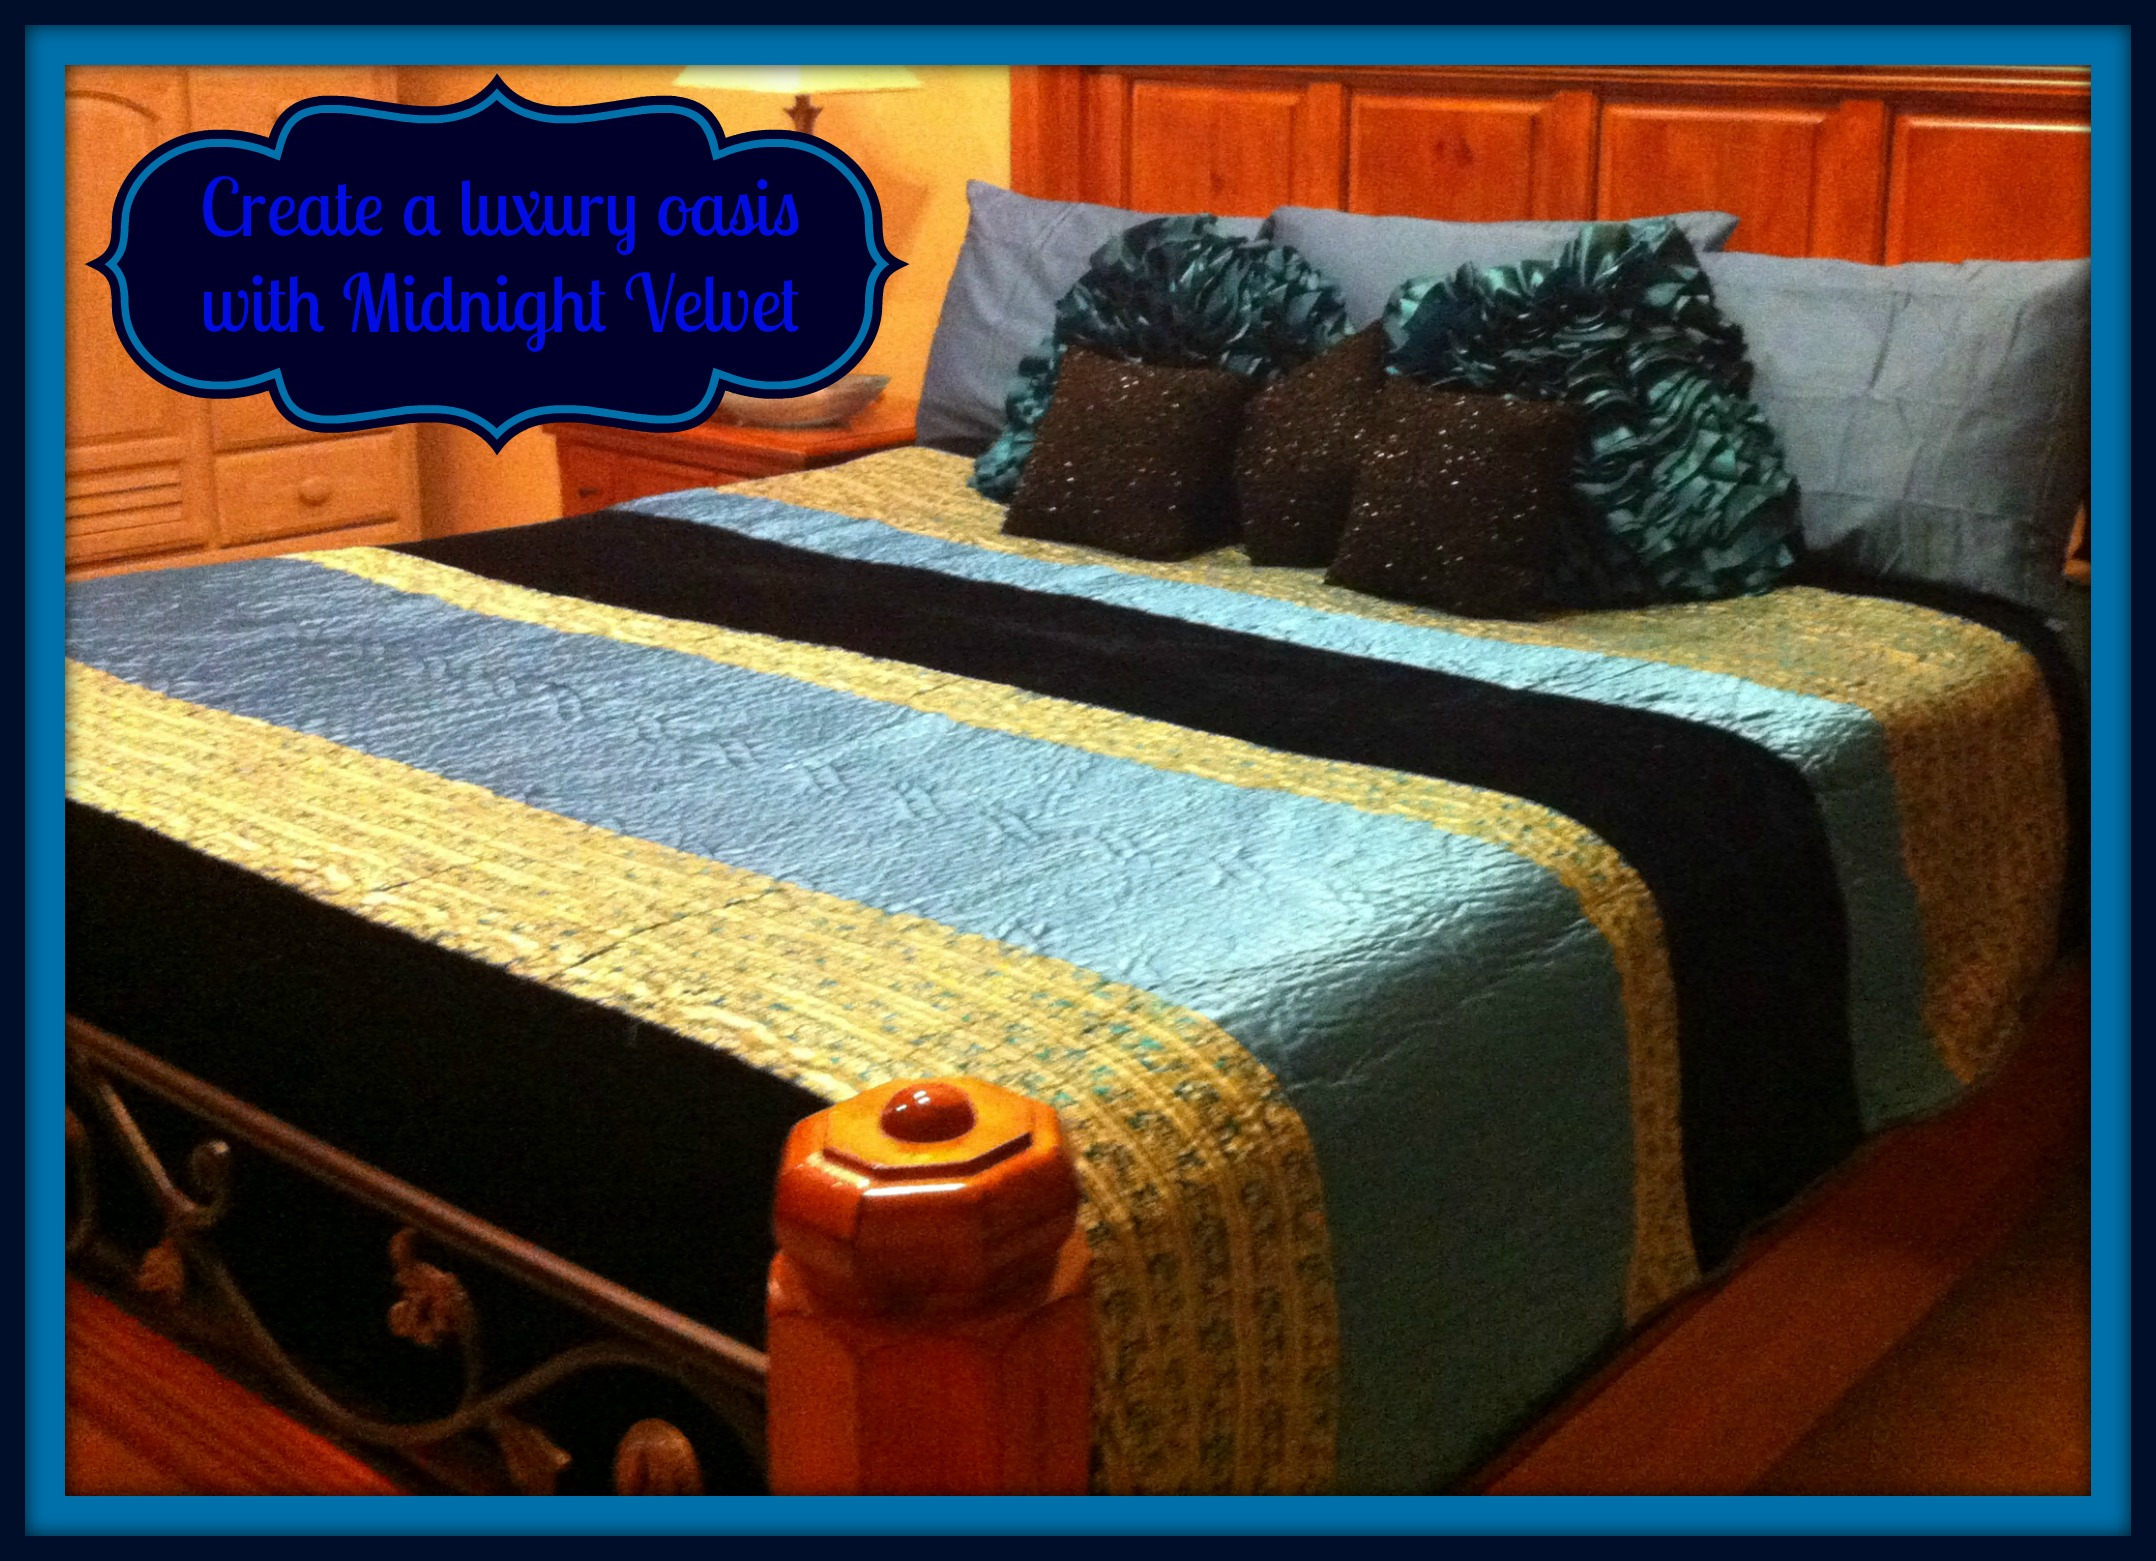 Giveaway Midnight Velvet Bedding Step Up Your Style And Add